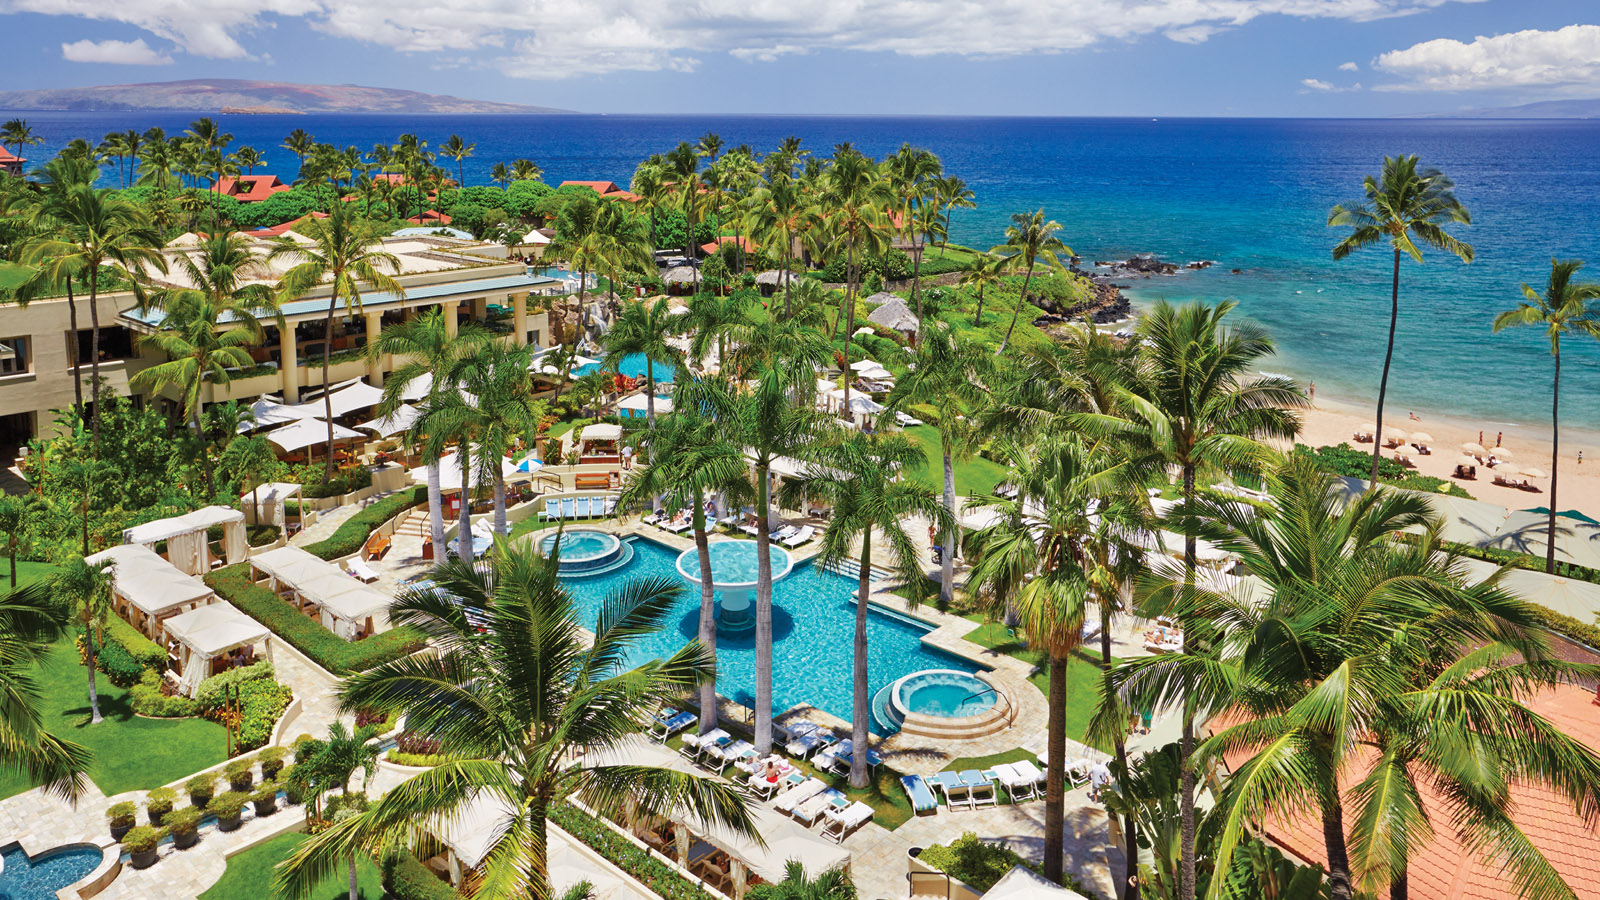 Best Hotels In Maui On The Beach